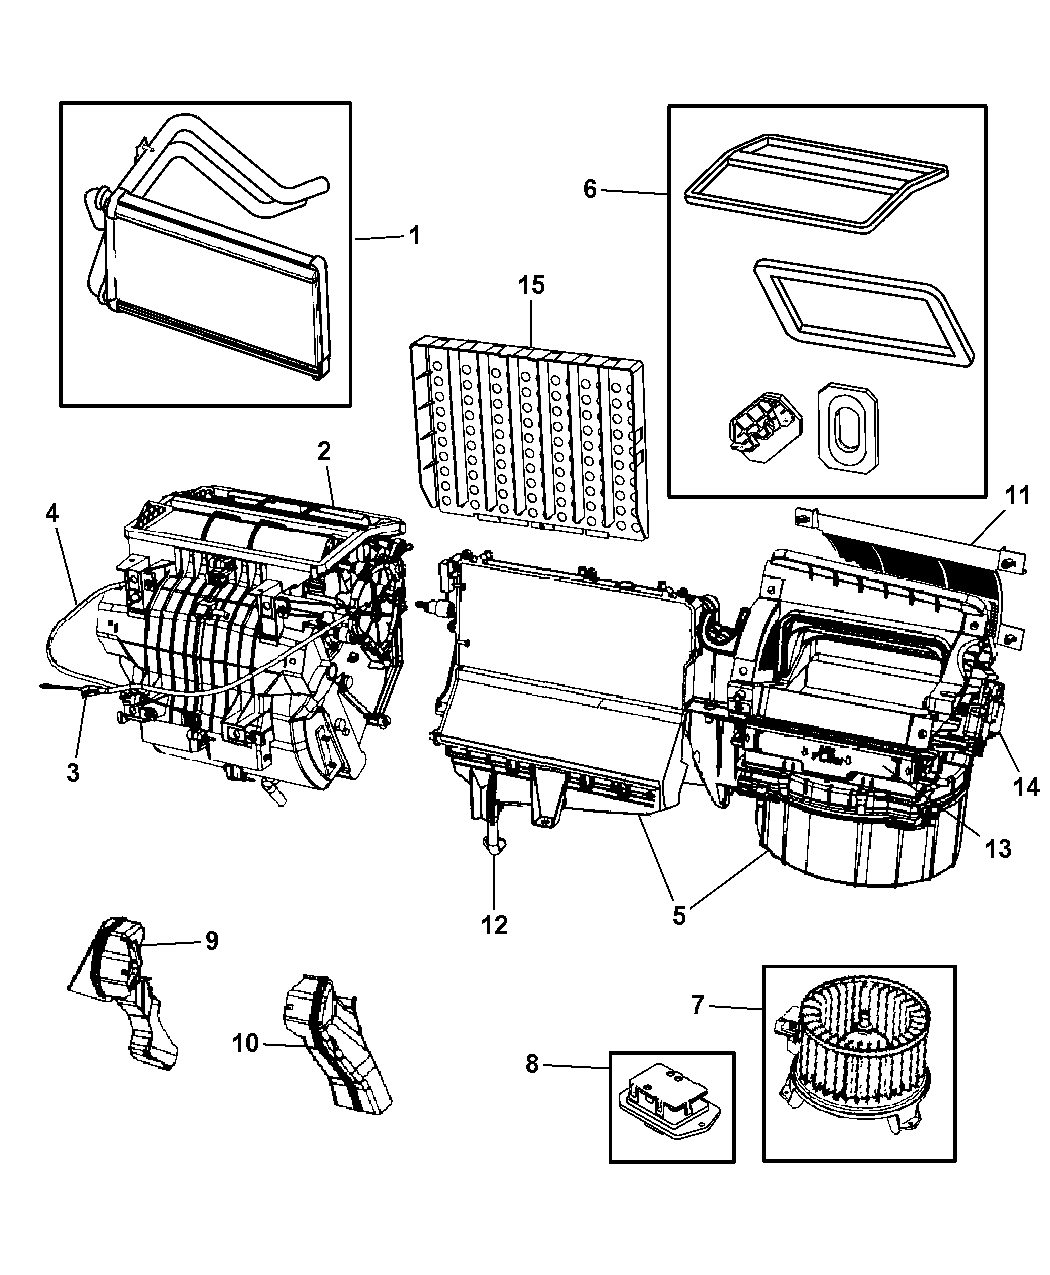 Dodge Caliber Srt 4 Engine Diagram Dodge Auto Wiring Diagram